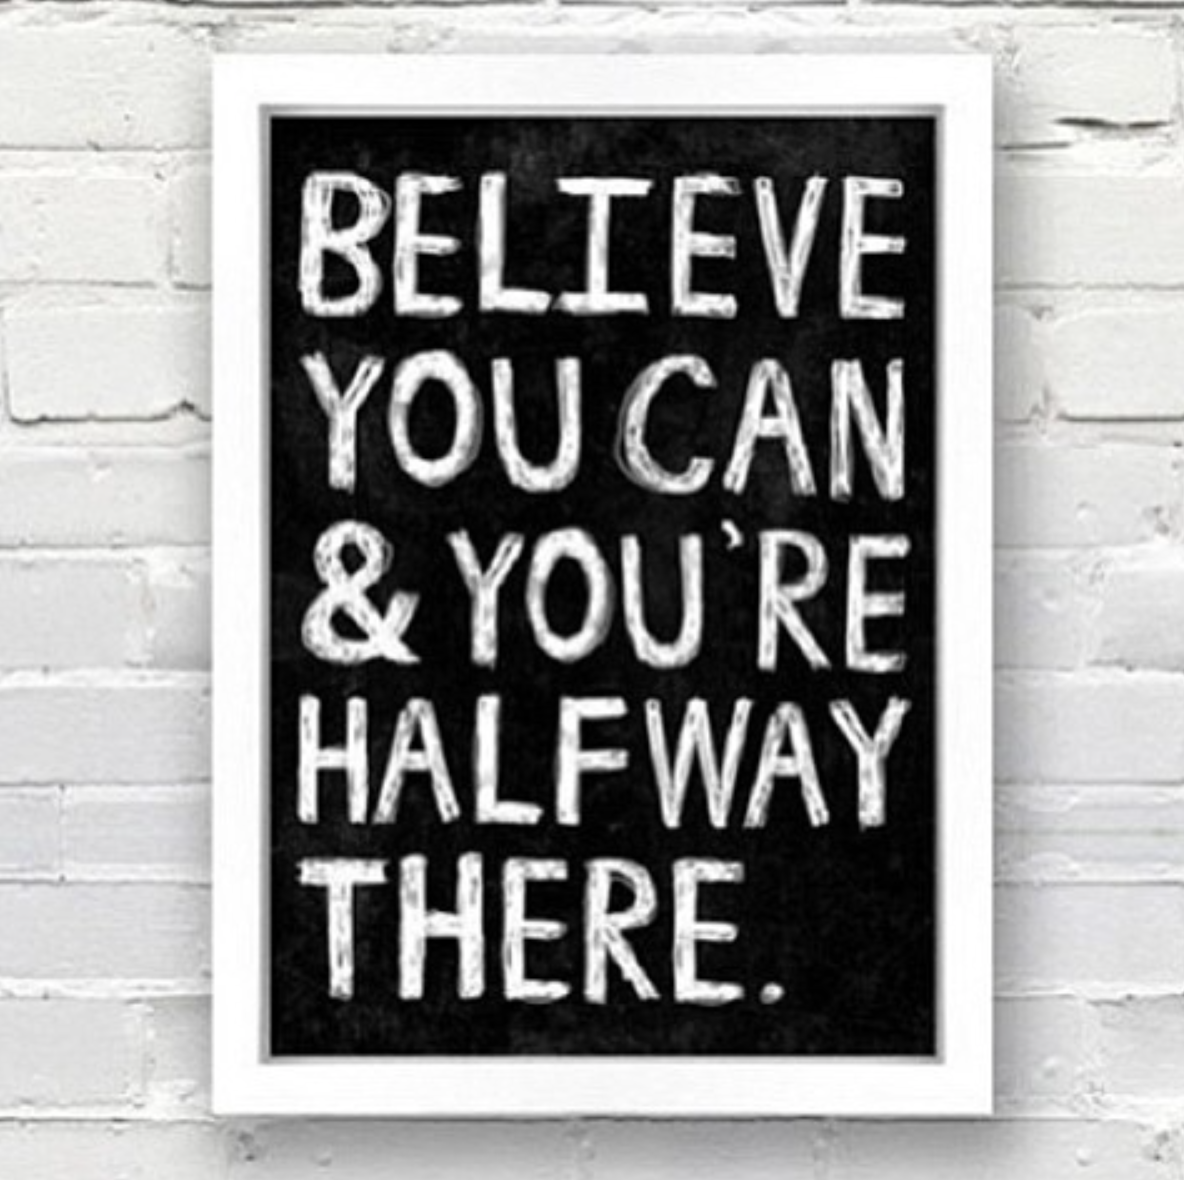 [Image] Believe you can and you're halfway there.